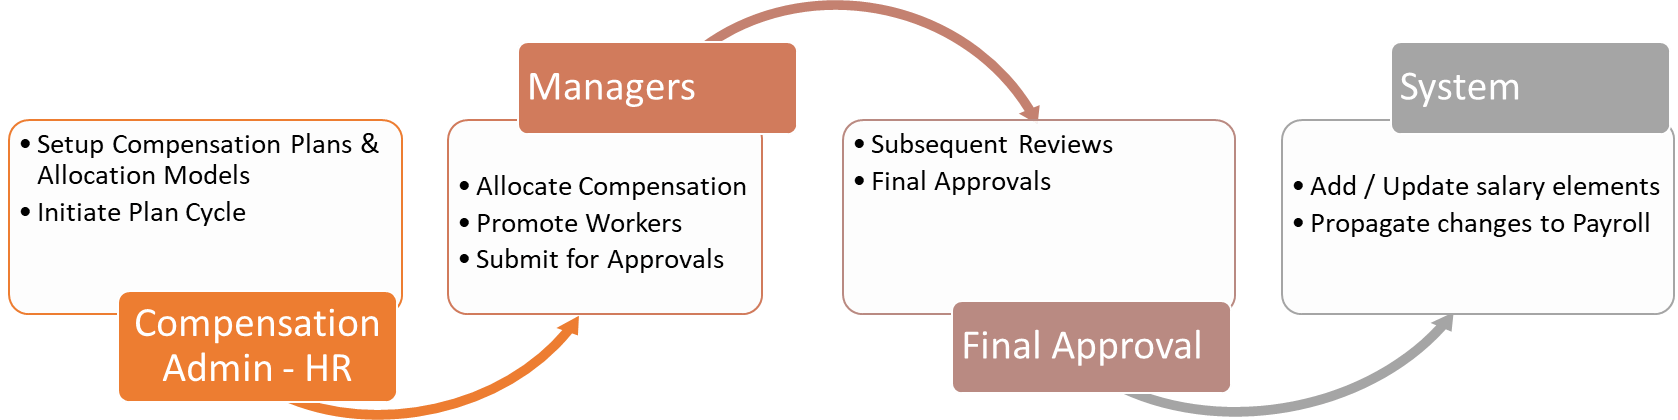 Implementing Compensation Strategy - Compensation Cycle Process